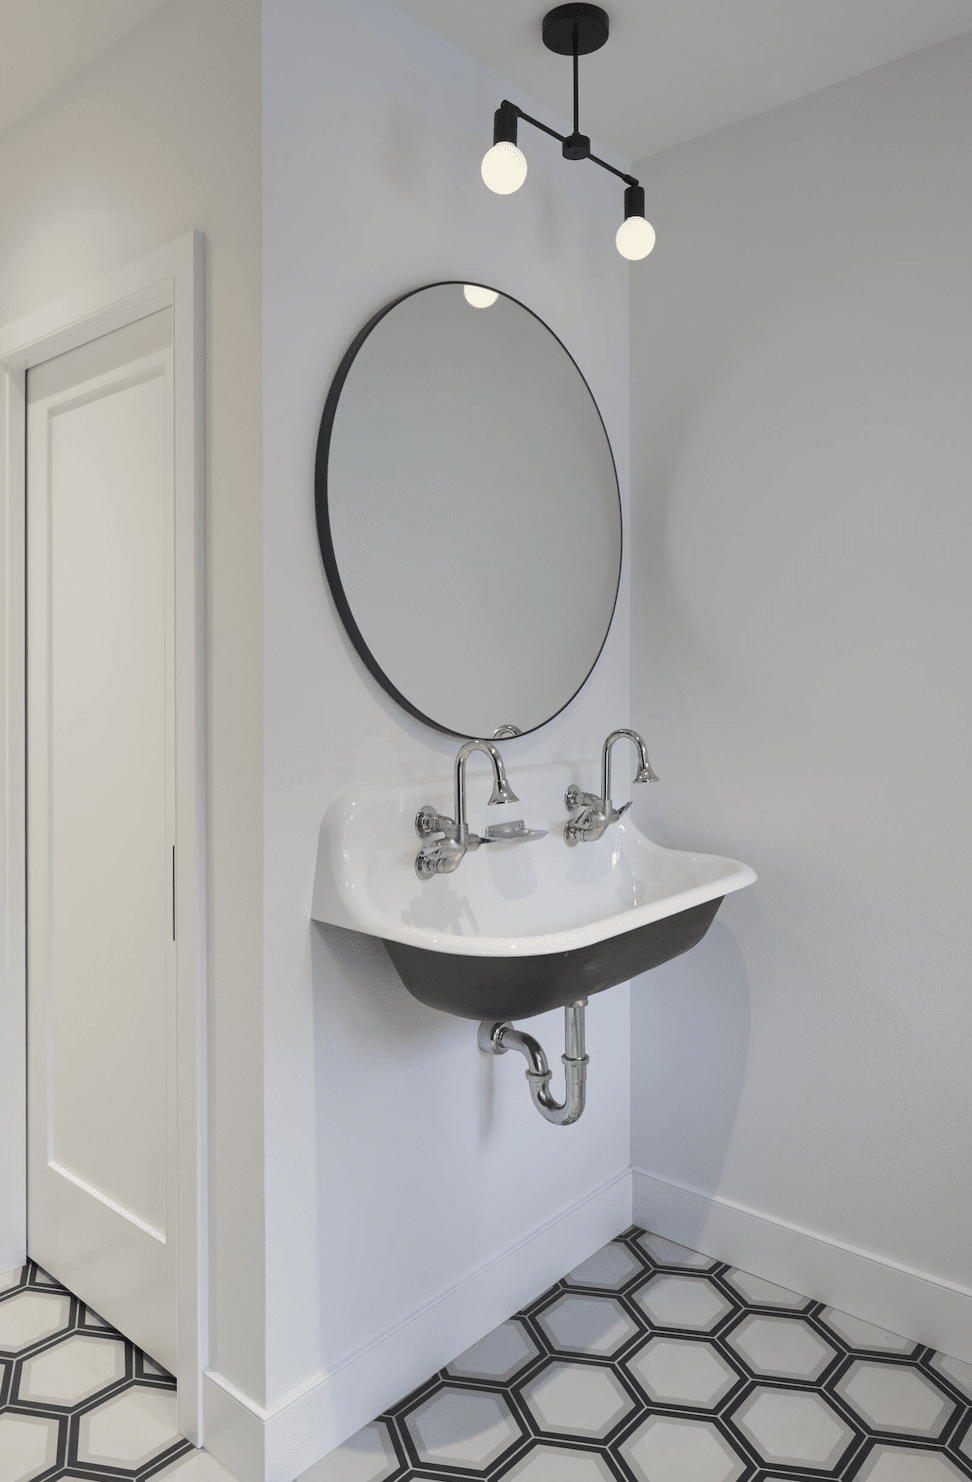 Bathroom vanity installation in Portland, OR from All Surfaces